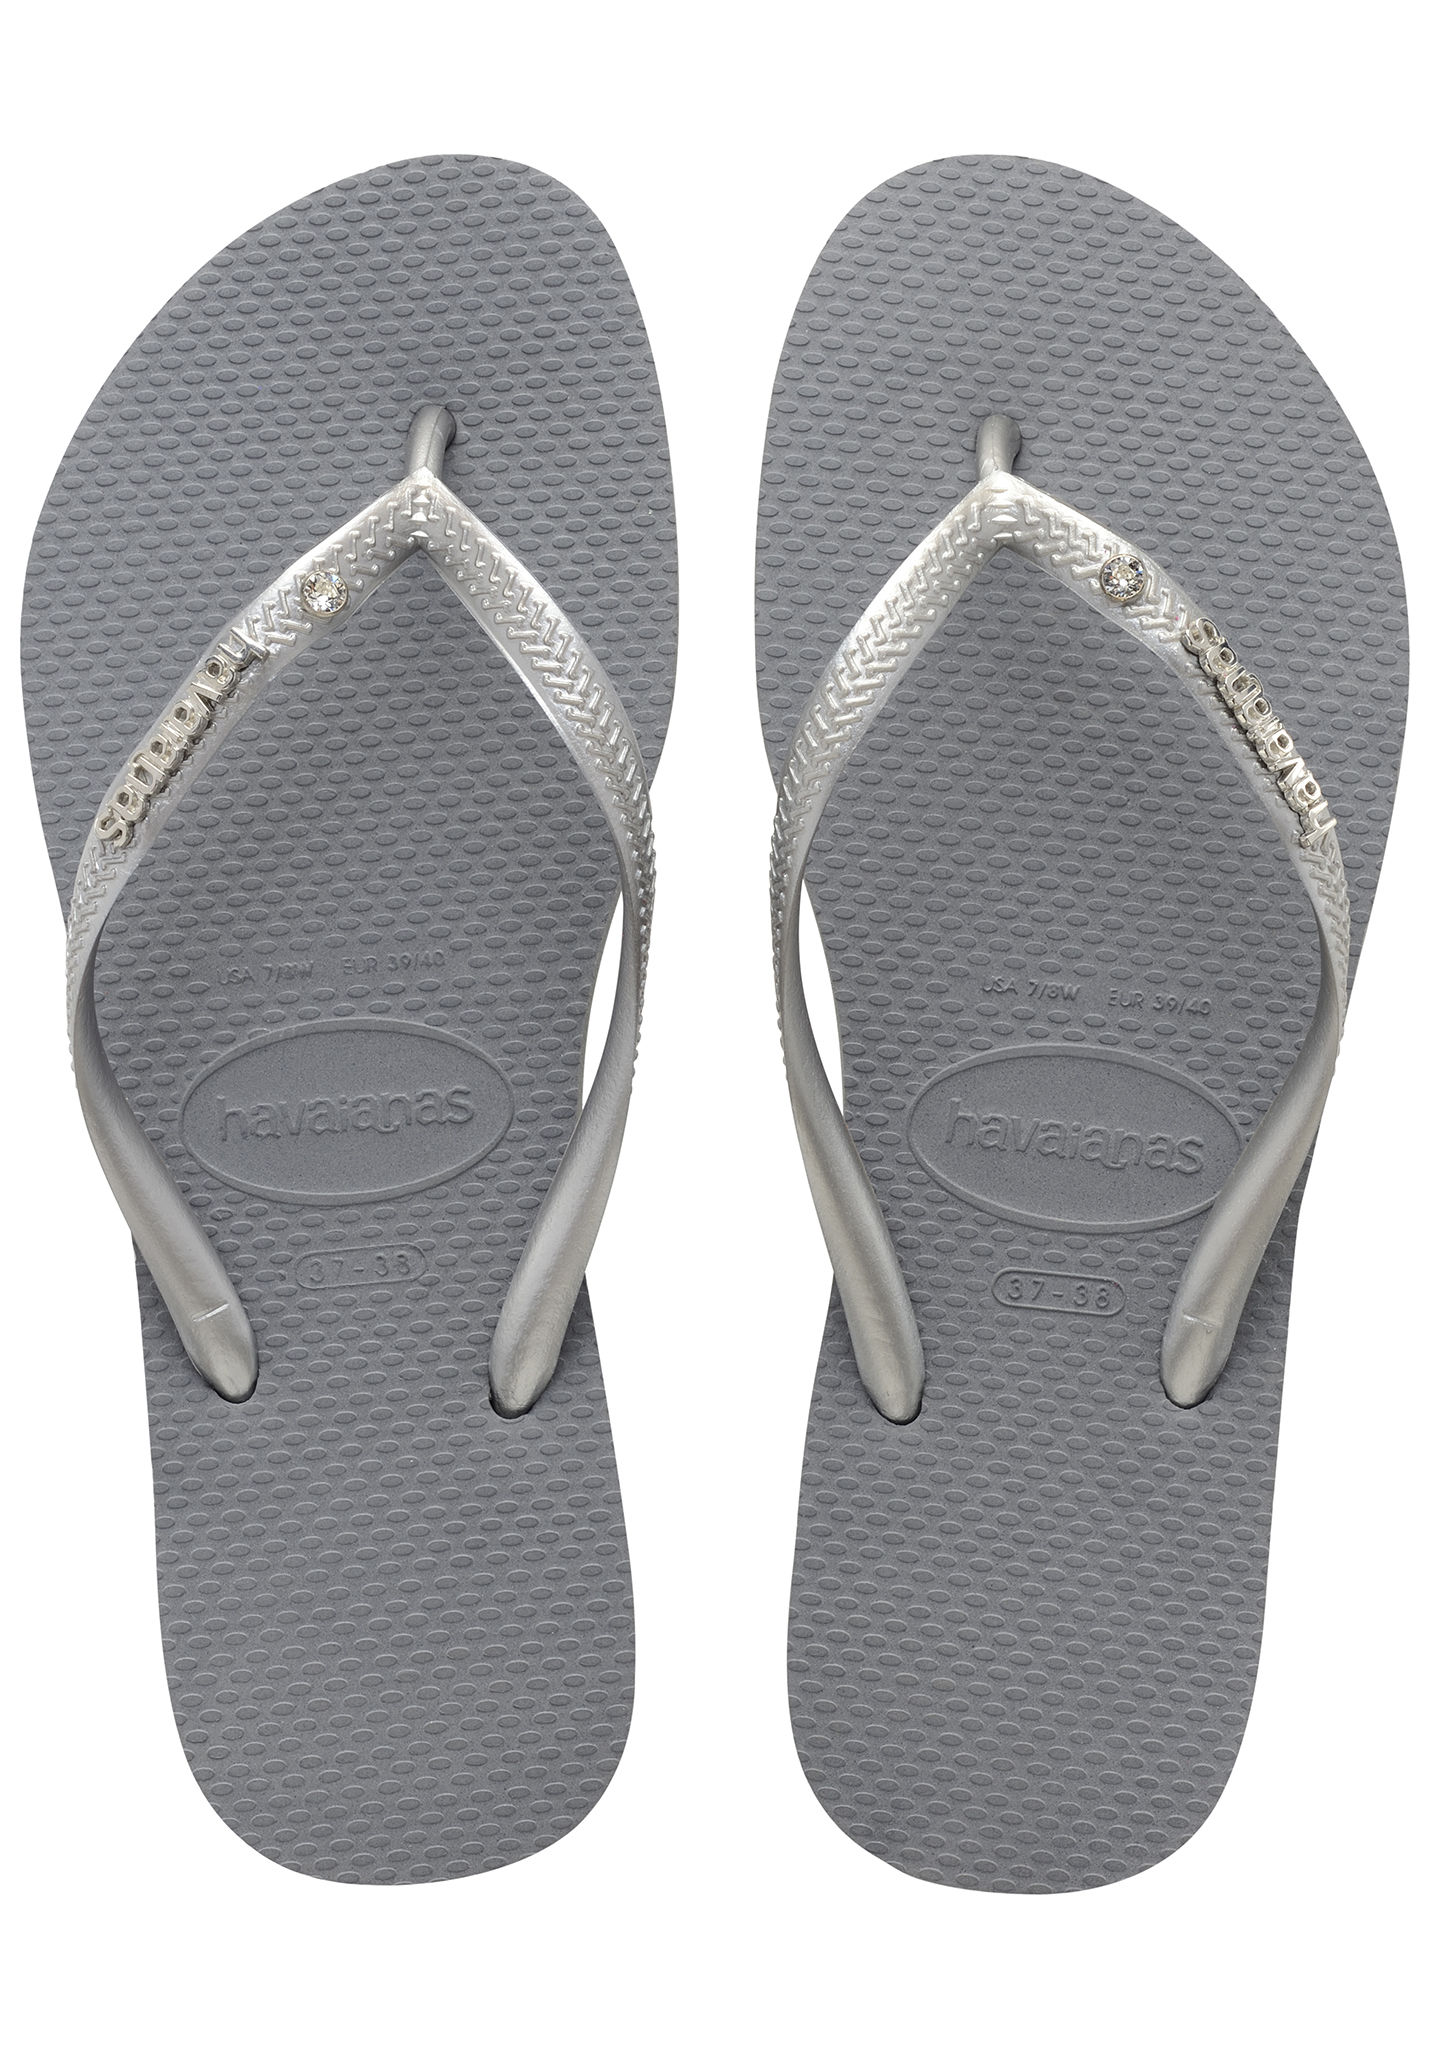 4d64c69e0 HAVAIANAS Slim Metal Logo and Crystal - Sandals for Women - Grey - Planet  Sports